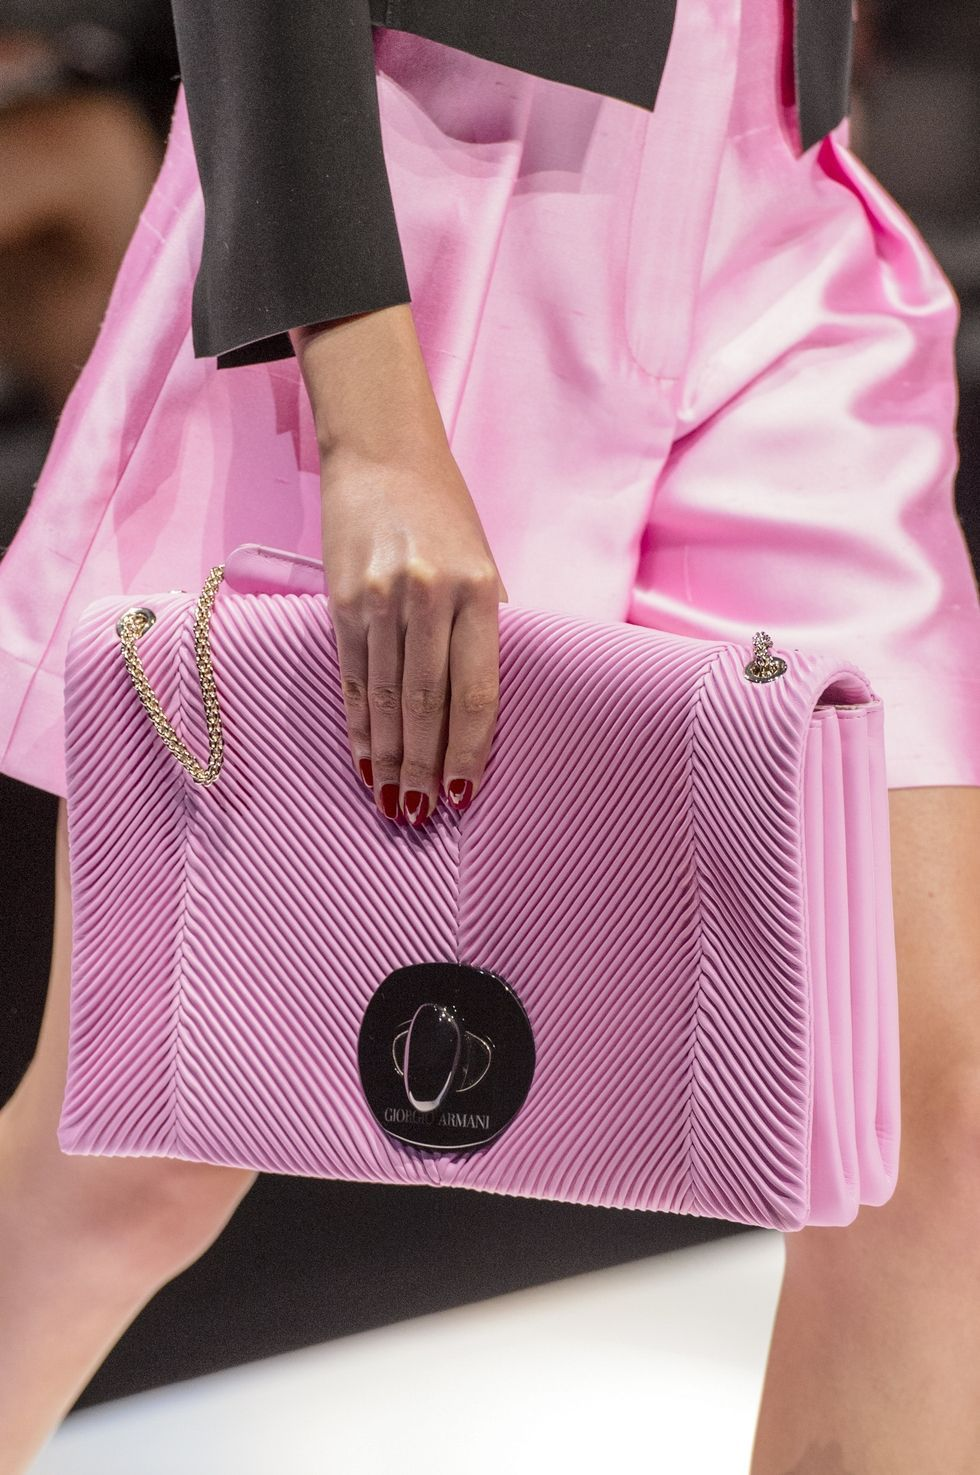 2ccc73a6acc Bag and Purse Trends Spring 2018 - Runway Bags Spring 2018   Bags ...